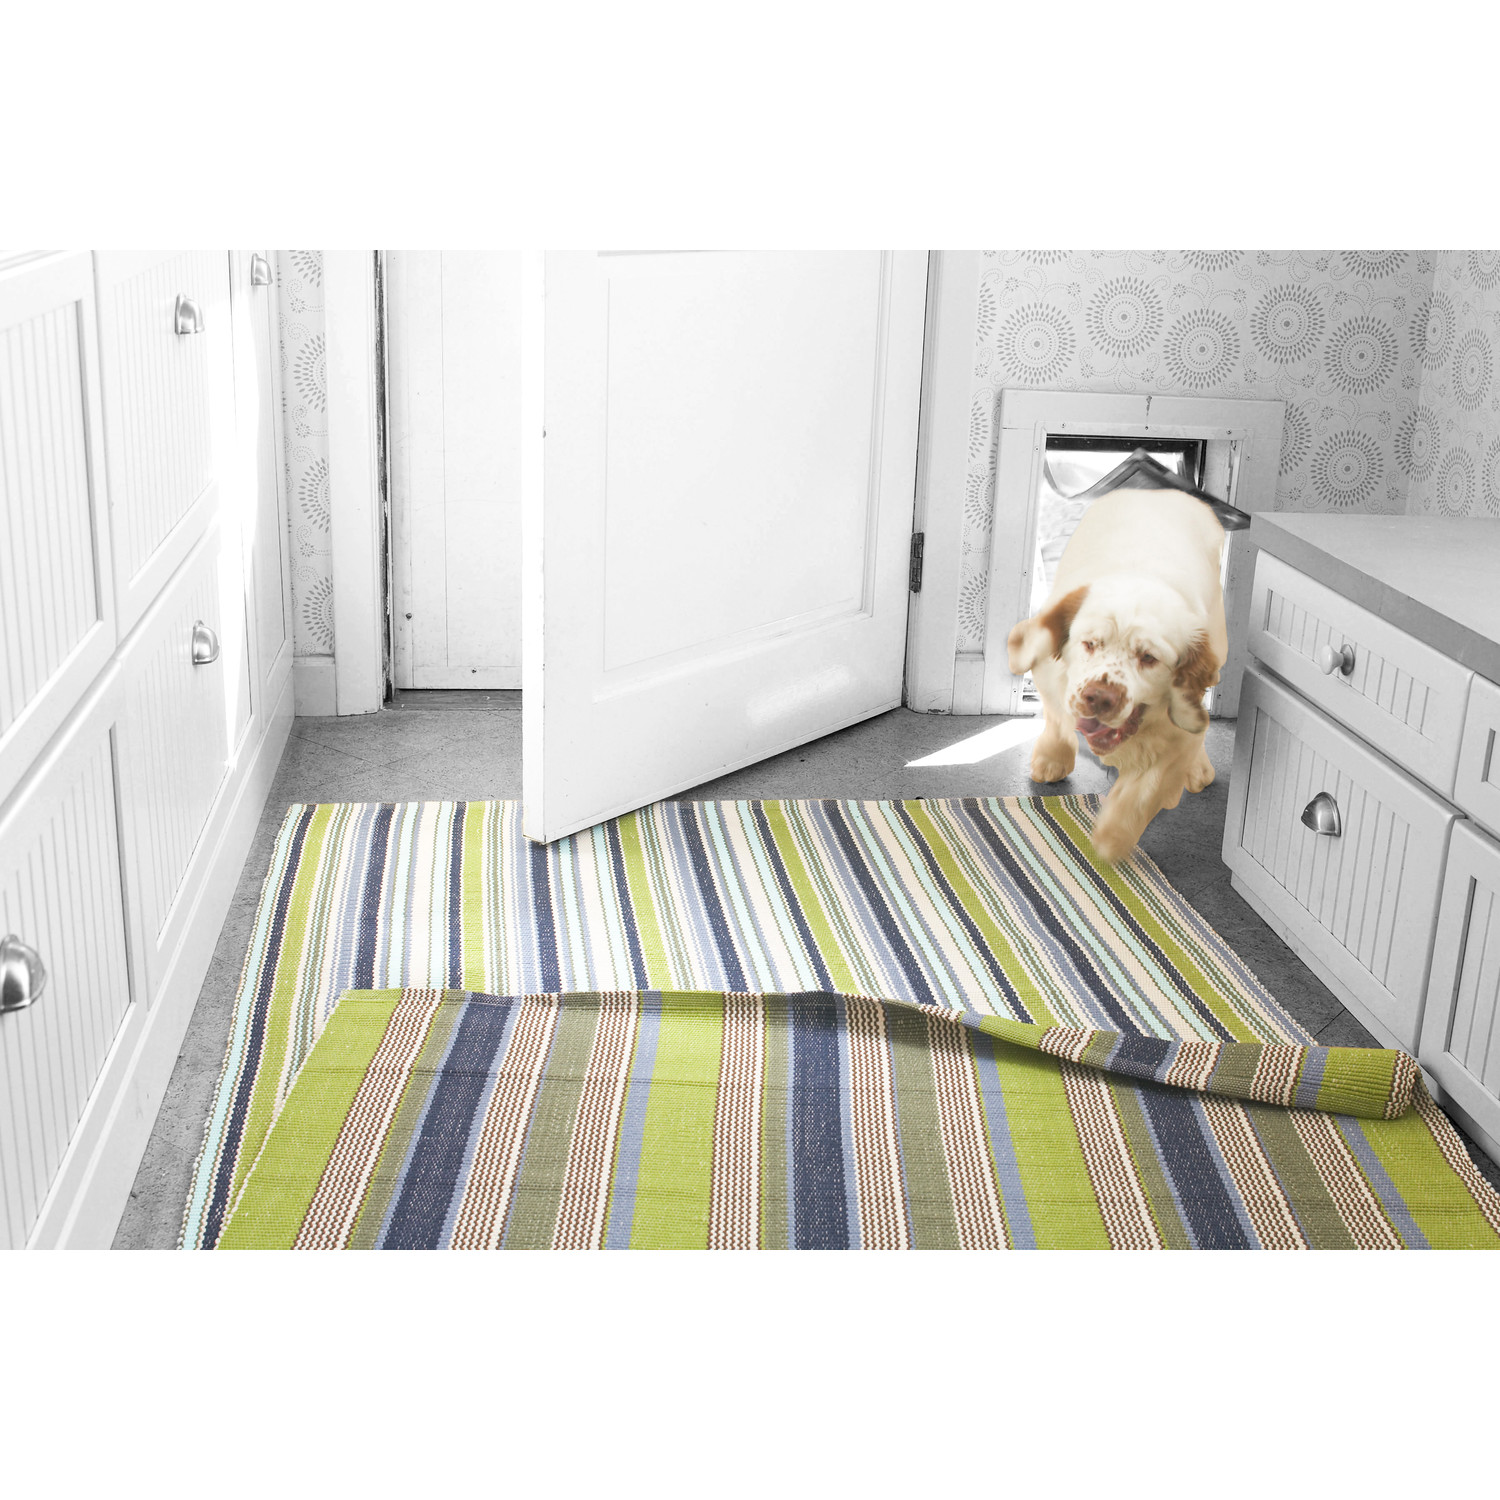 Dash And Albert Rugs Pueblo Woven Marina Stripe Indoor rug area on wooden floor which matched with ivory wallpaper for interior design ideas